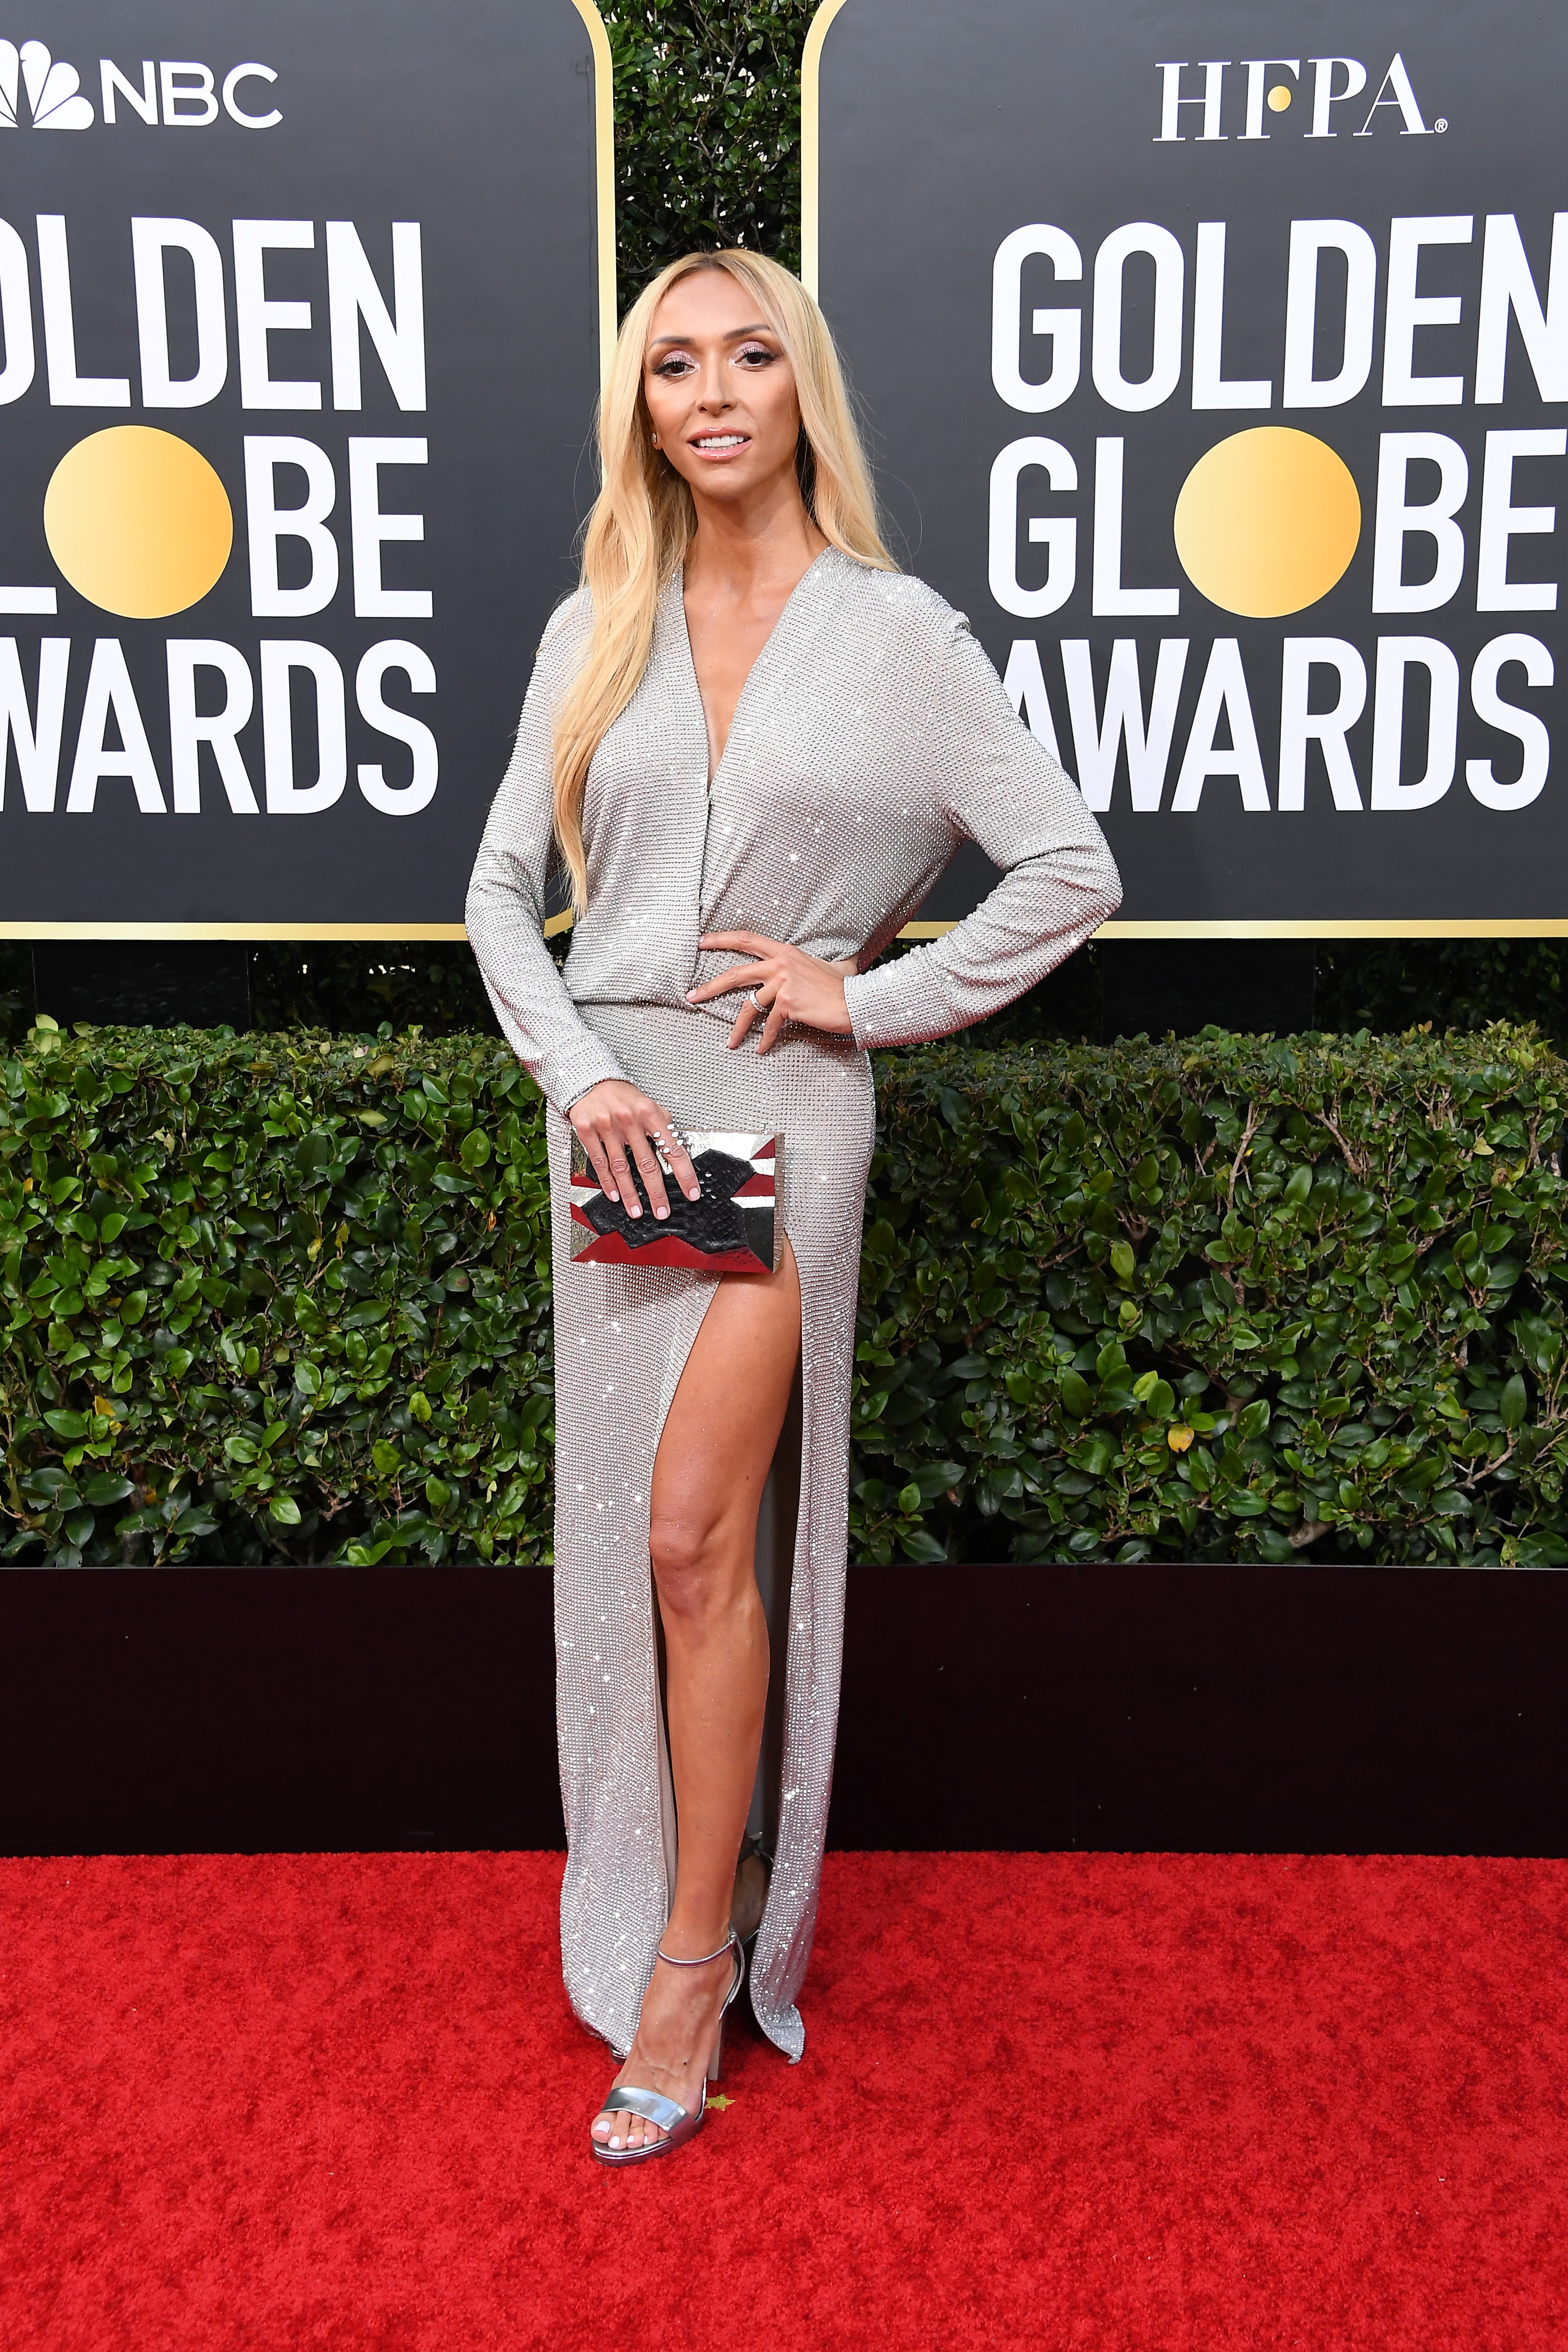 BEVERLY HILLS, CALIFORNIA - JANUARY 05: Giuliana Rancic attends the 77th Annual Golden Globe Awards at The Beverly Hilton Hotel on January 05, 2020 in Beverly Hills, California. (Photo by Steve Granitz/WireImage)